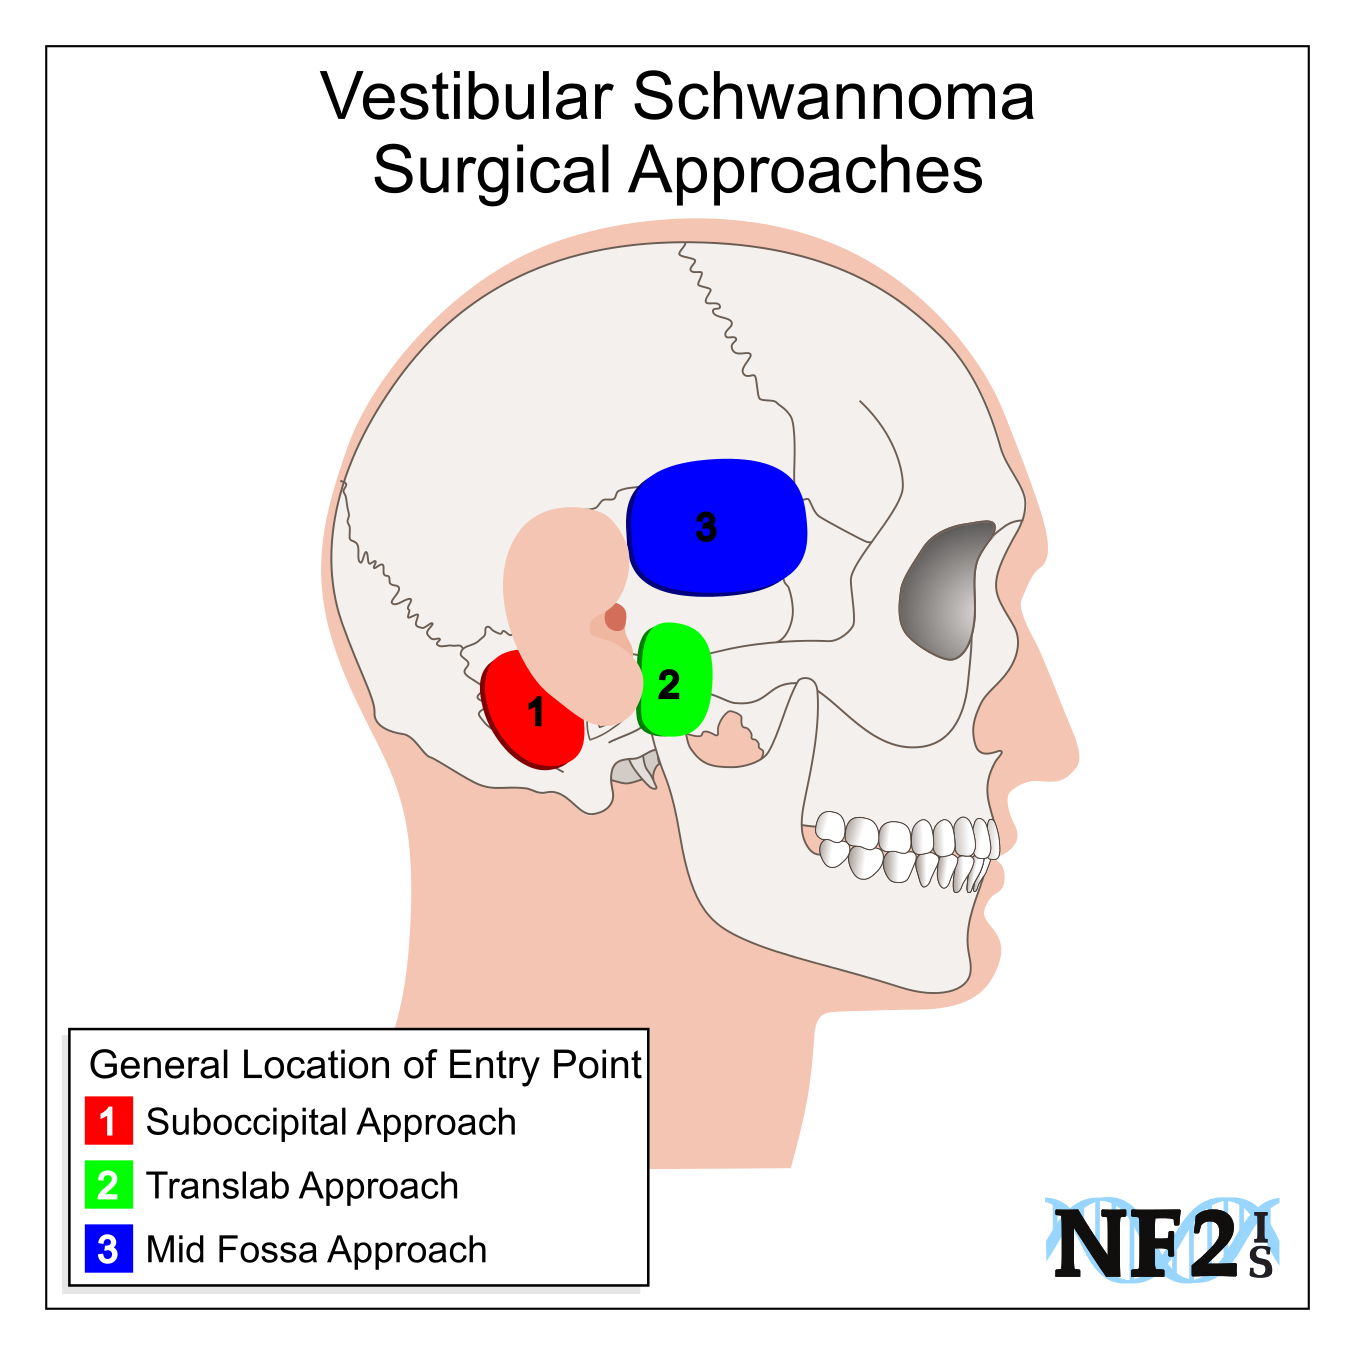 Vestibular Schwannoma Surgery, Vestibular Schwannoma Approach, Translab Approach, Translabyrinthine,  				Mid Fossa Approach, Mid-Fossa Approach, Middle Fossa Approach, Middle Cranial Fossa Approach,  				Suboccipital Approach, Retrosigmoid Approach, Keyhole Approach